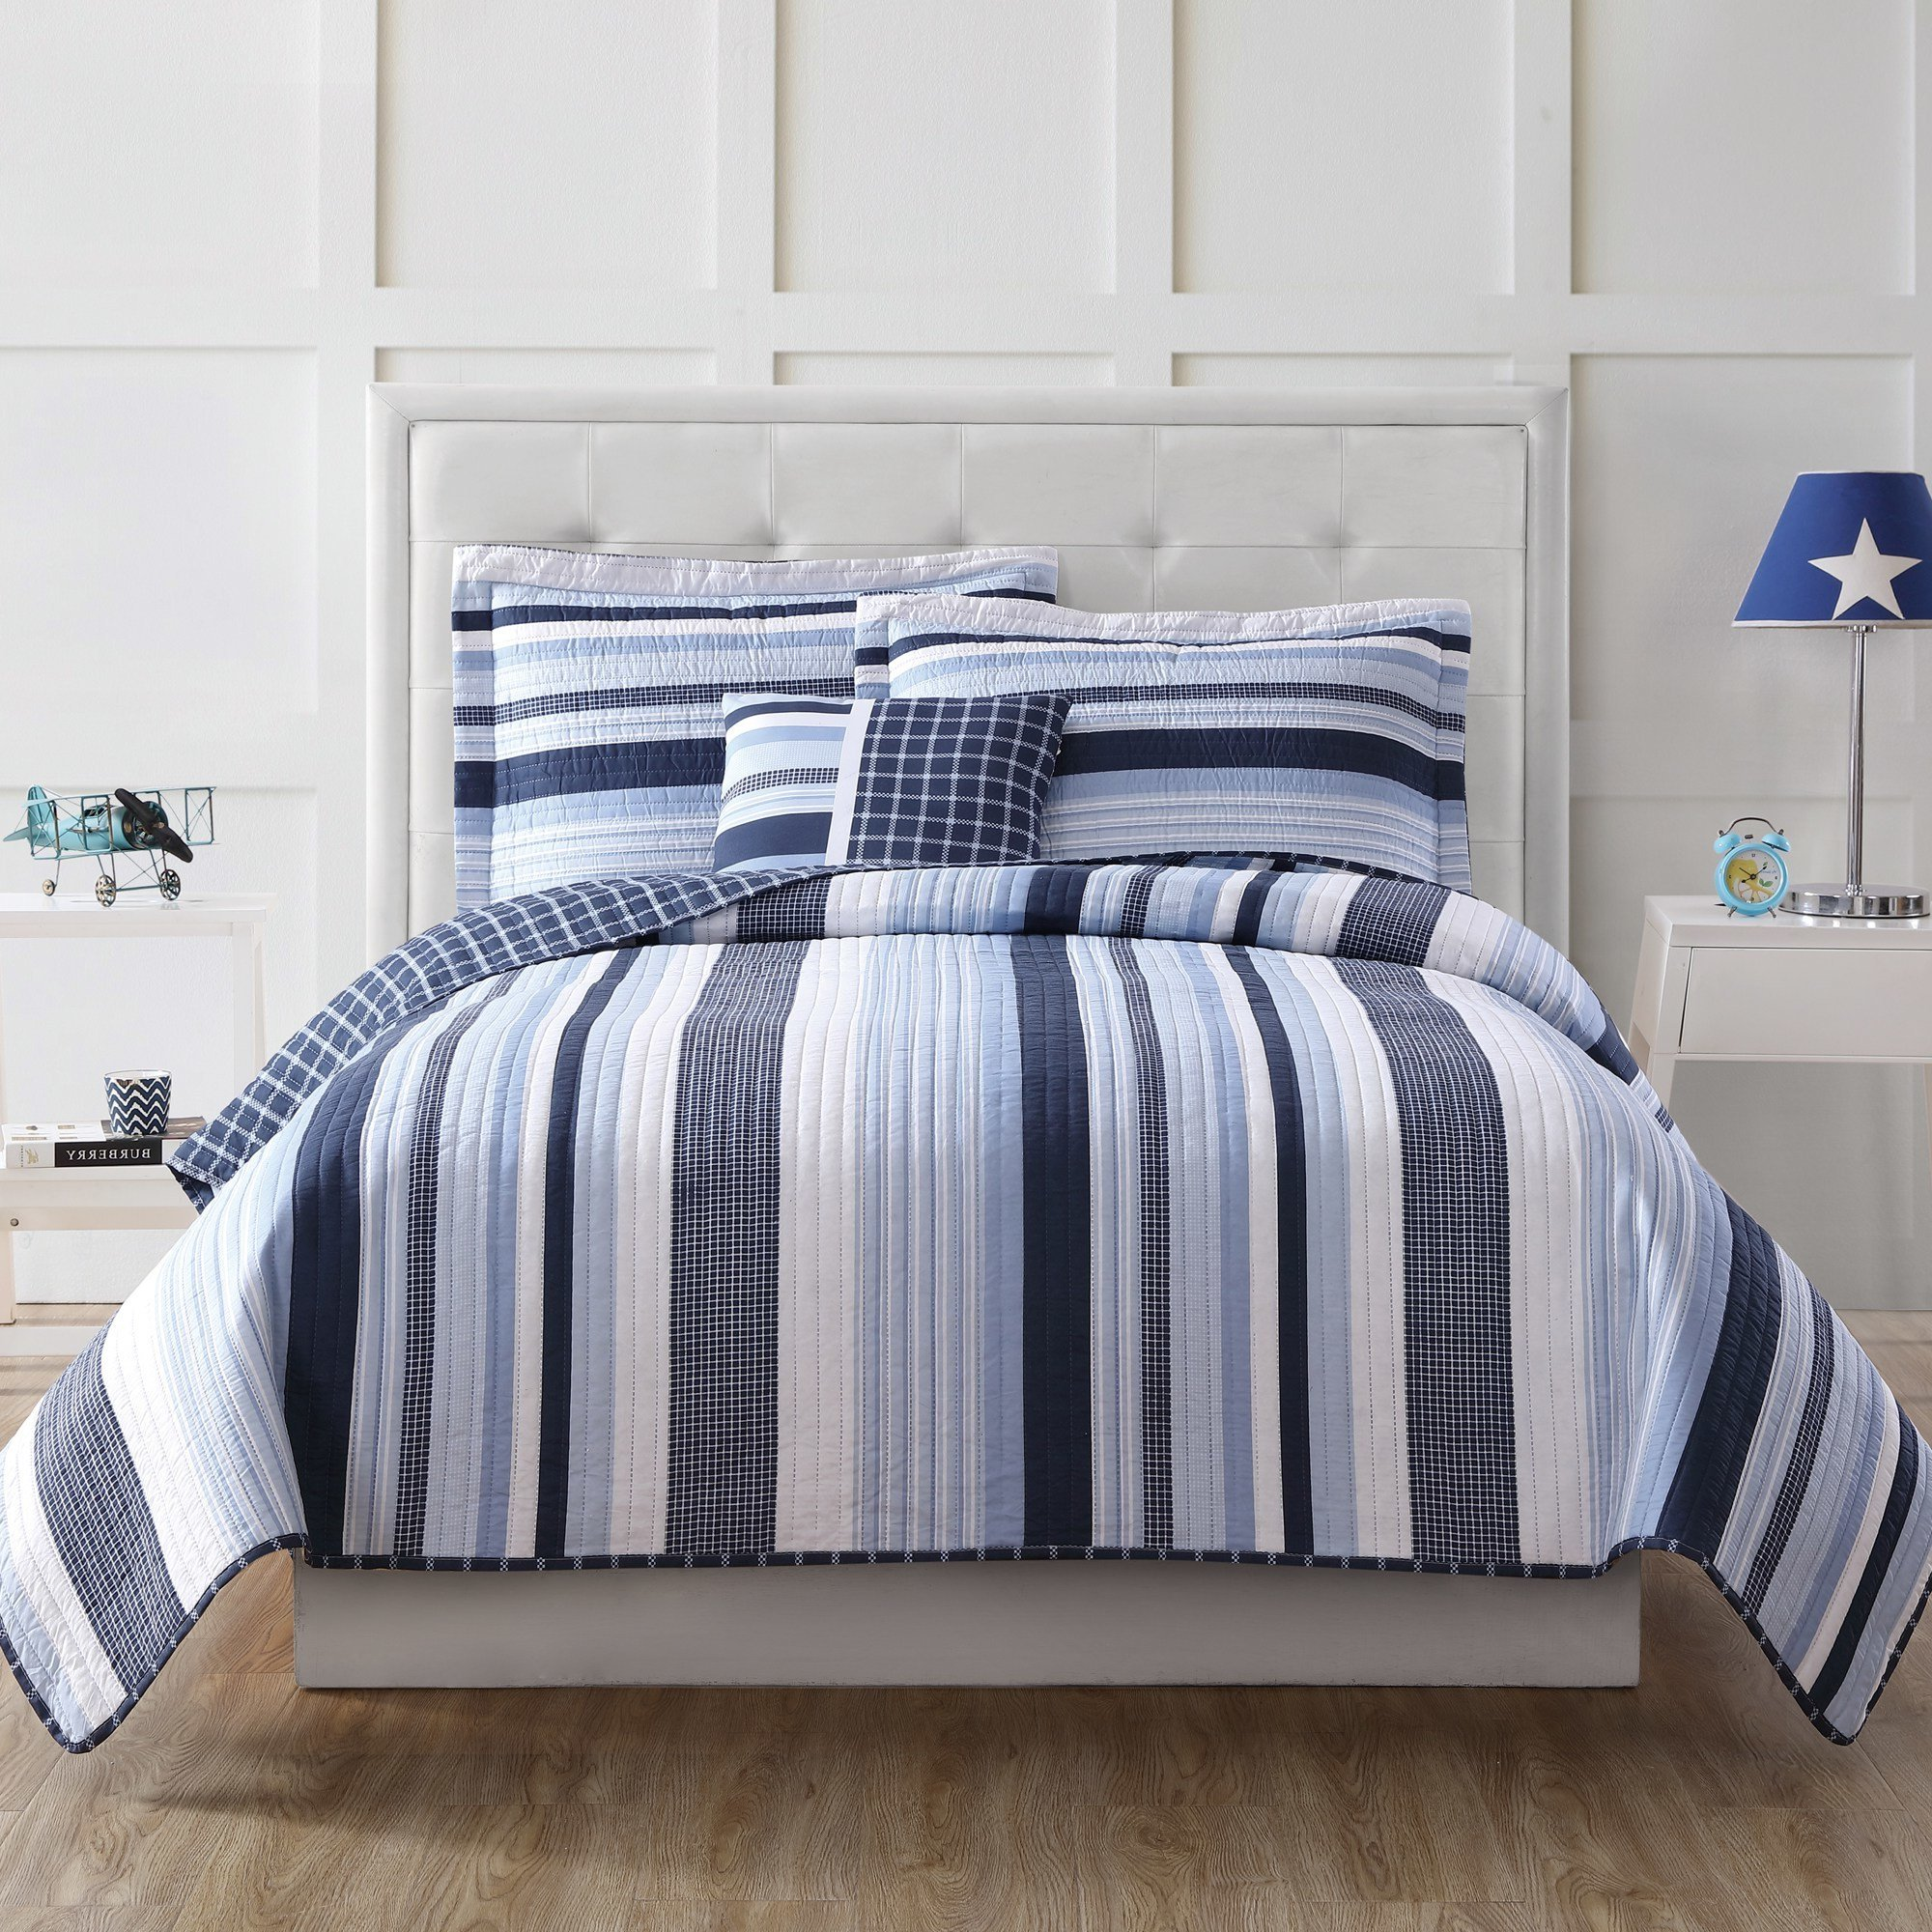 3 Piece Blue White Stripes Pattern Quilt with Bonus Pillow Twin Set, Elegant Windowpane Plaid Stripe-Inspired Design, Casual Check Print Reversible Bedding, Bright Colors, Classic Style, for Unisex